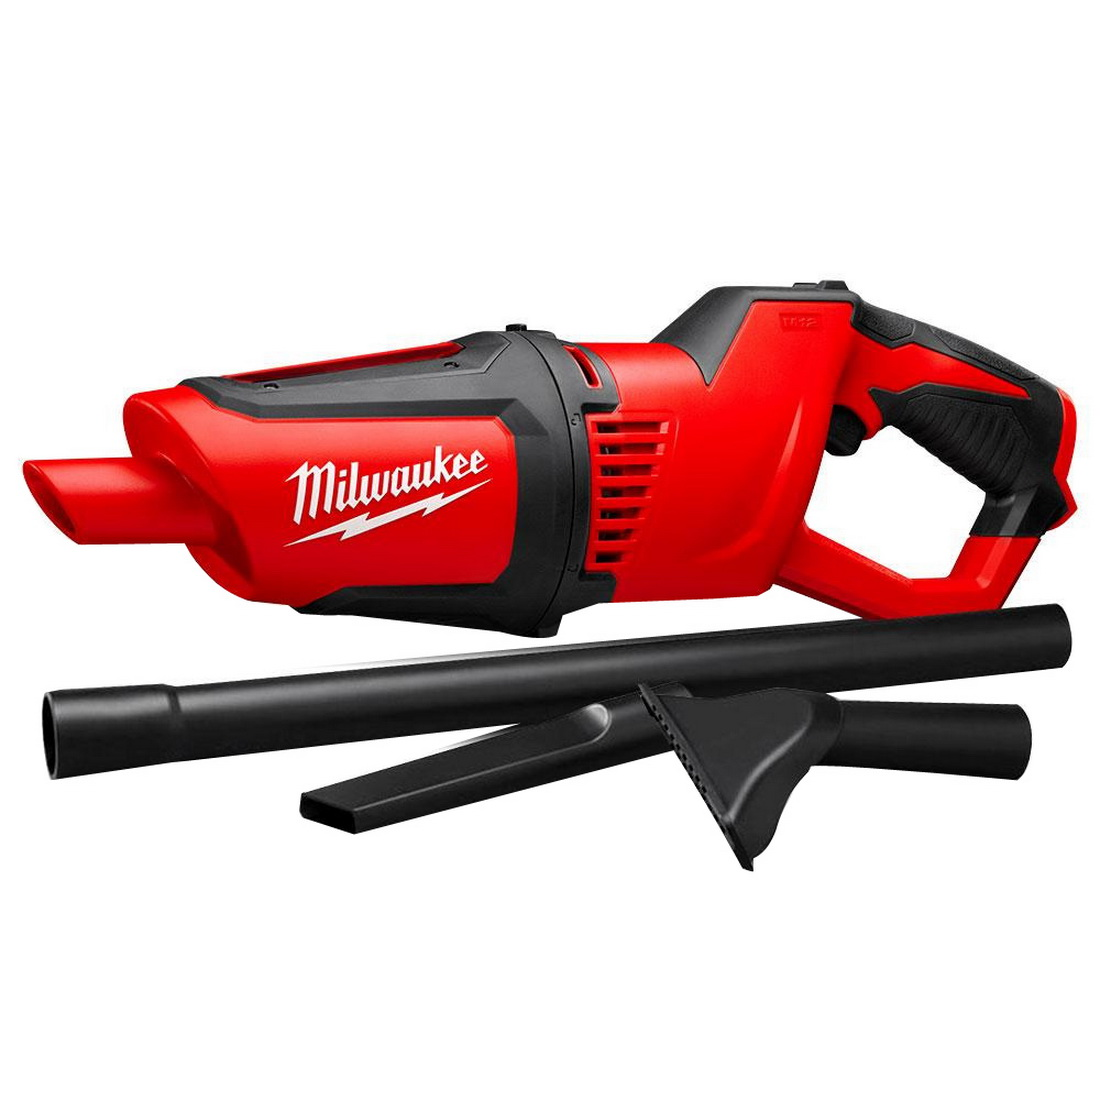 M12 Cordless Compact Hand Vacuum (Tool Only)